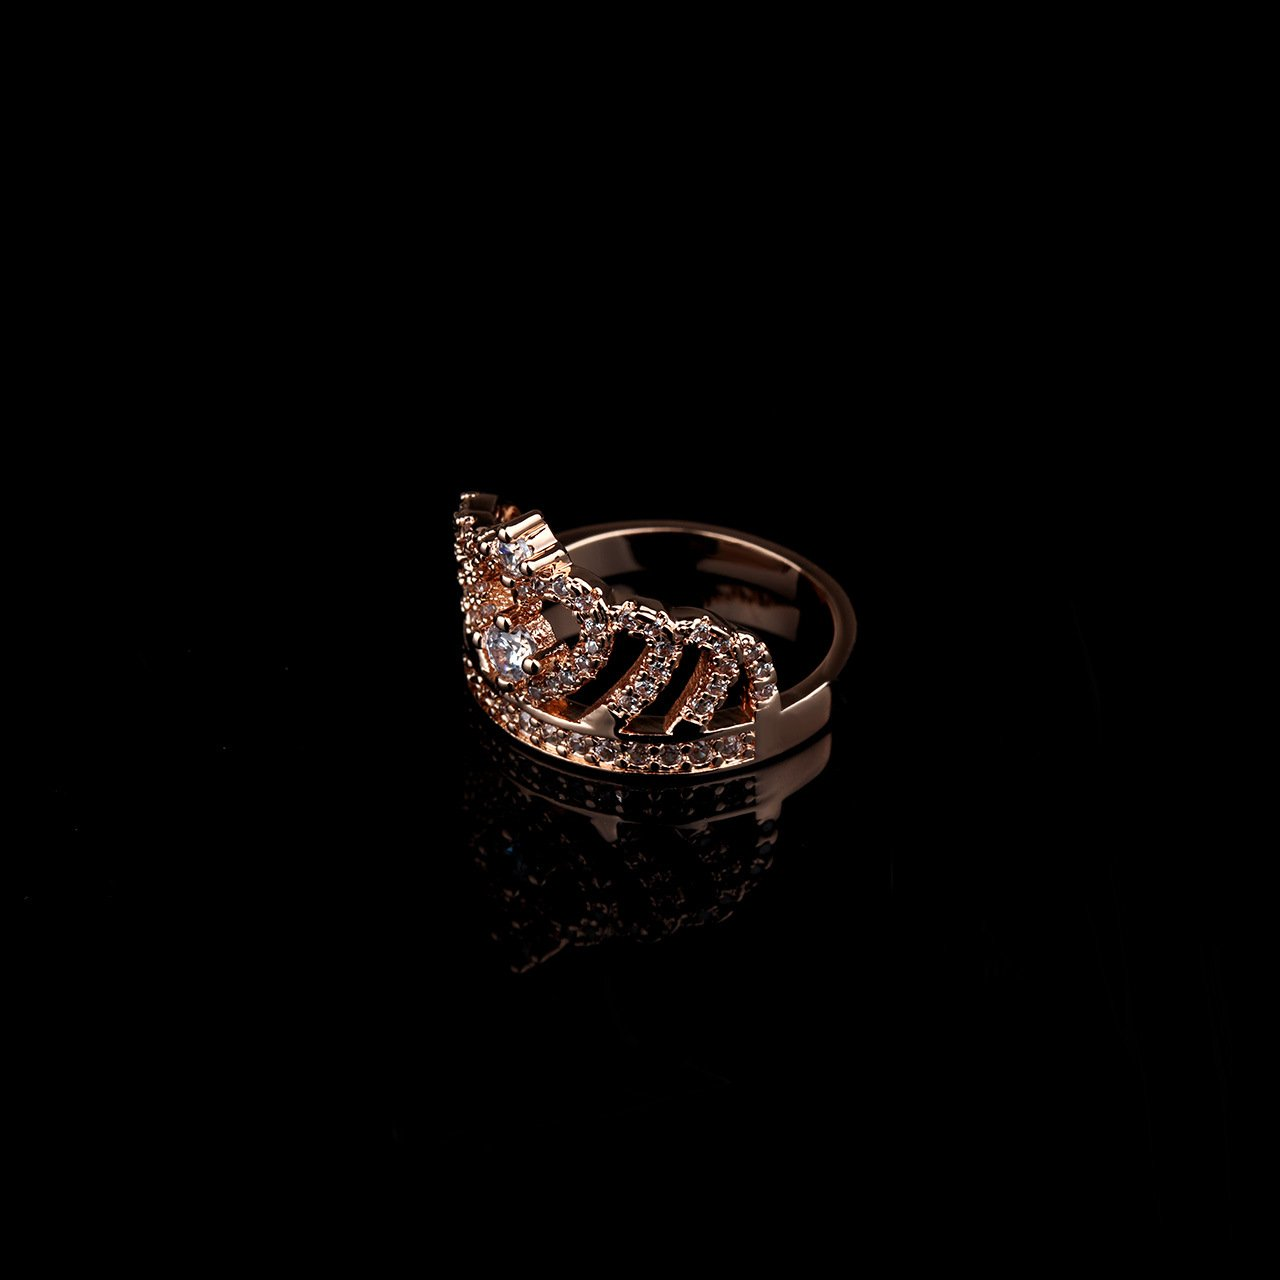 Rose 2018 crown rings fashion jewelry copper products anti allergy fashion temperament